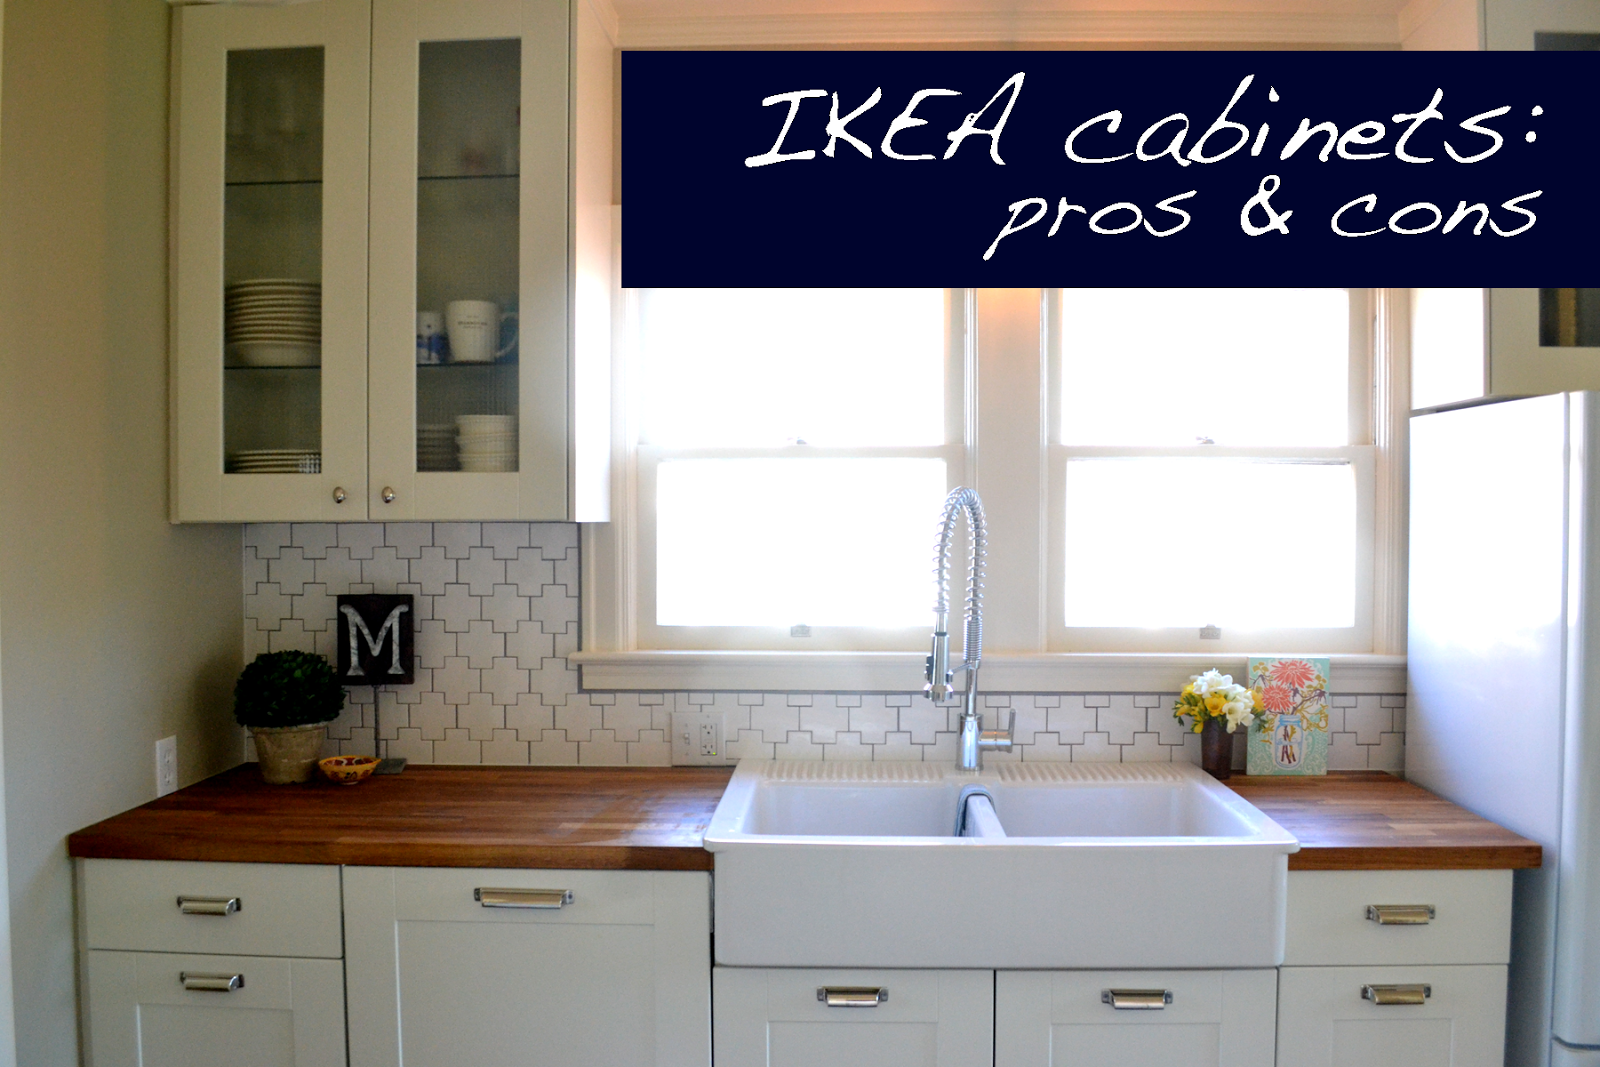 renovate pros and cons of ikea cabinets ikea kitchen remodel cost renovate pros and cons of IKEA cabinets